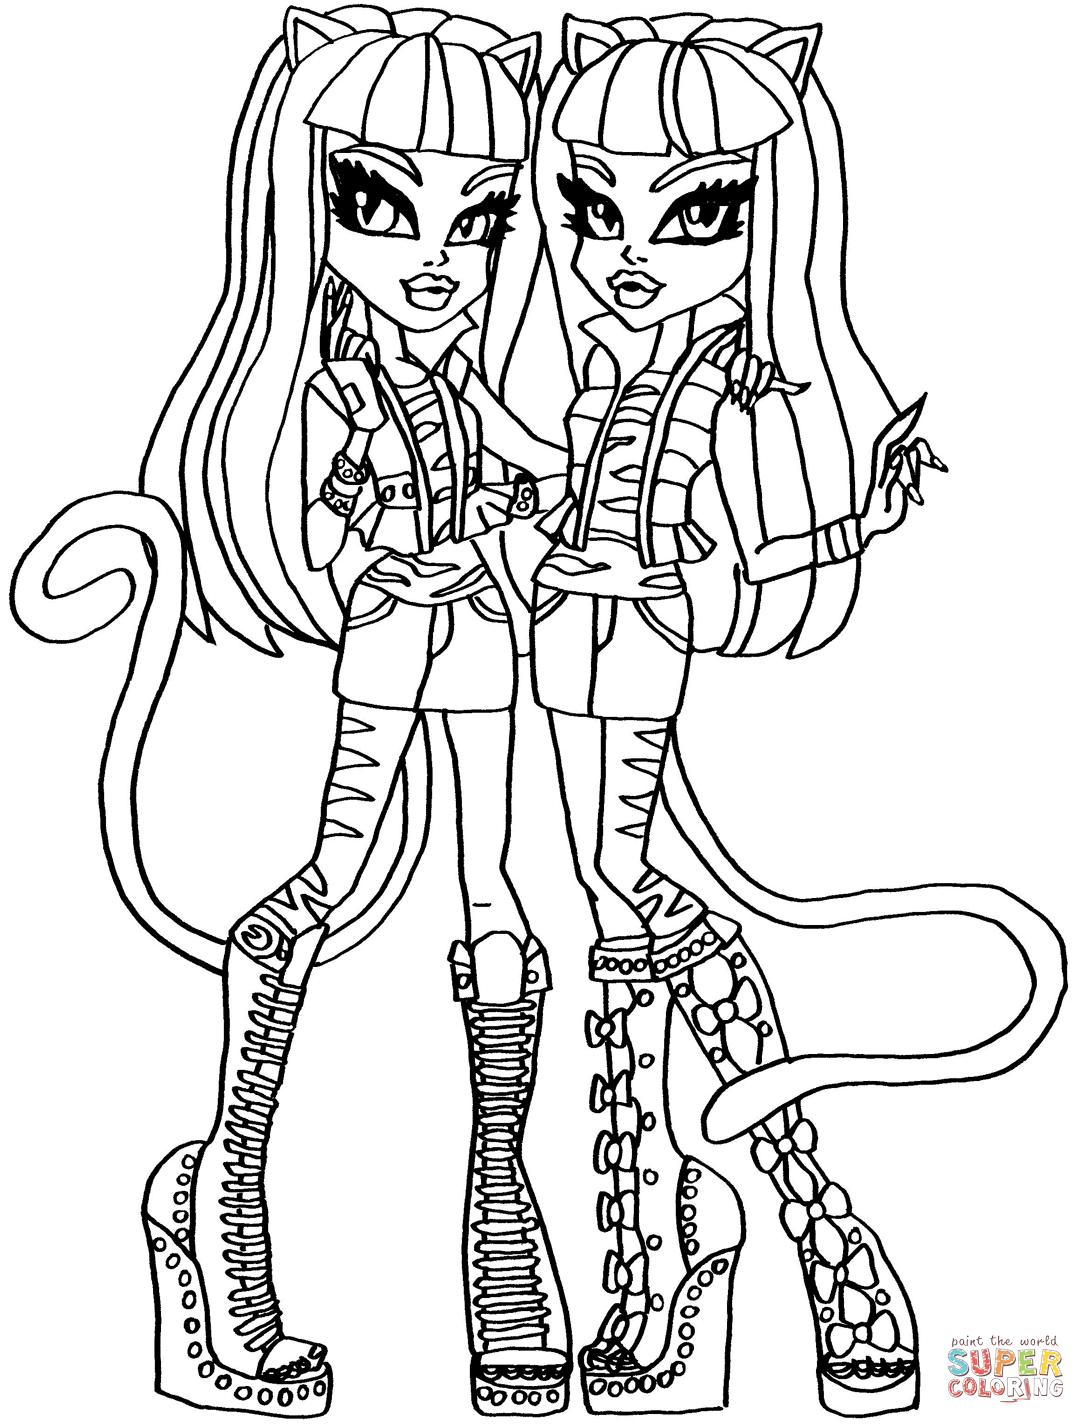 Exquisite Monster High Printables Coloring Pages Free Gallery Of Inspiring Monster High Coloring Pages Colouring Sheets Printables Gallery